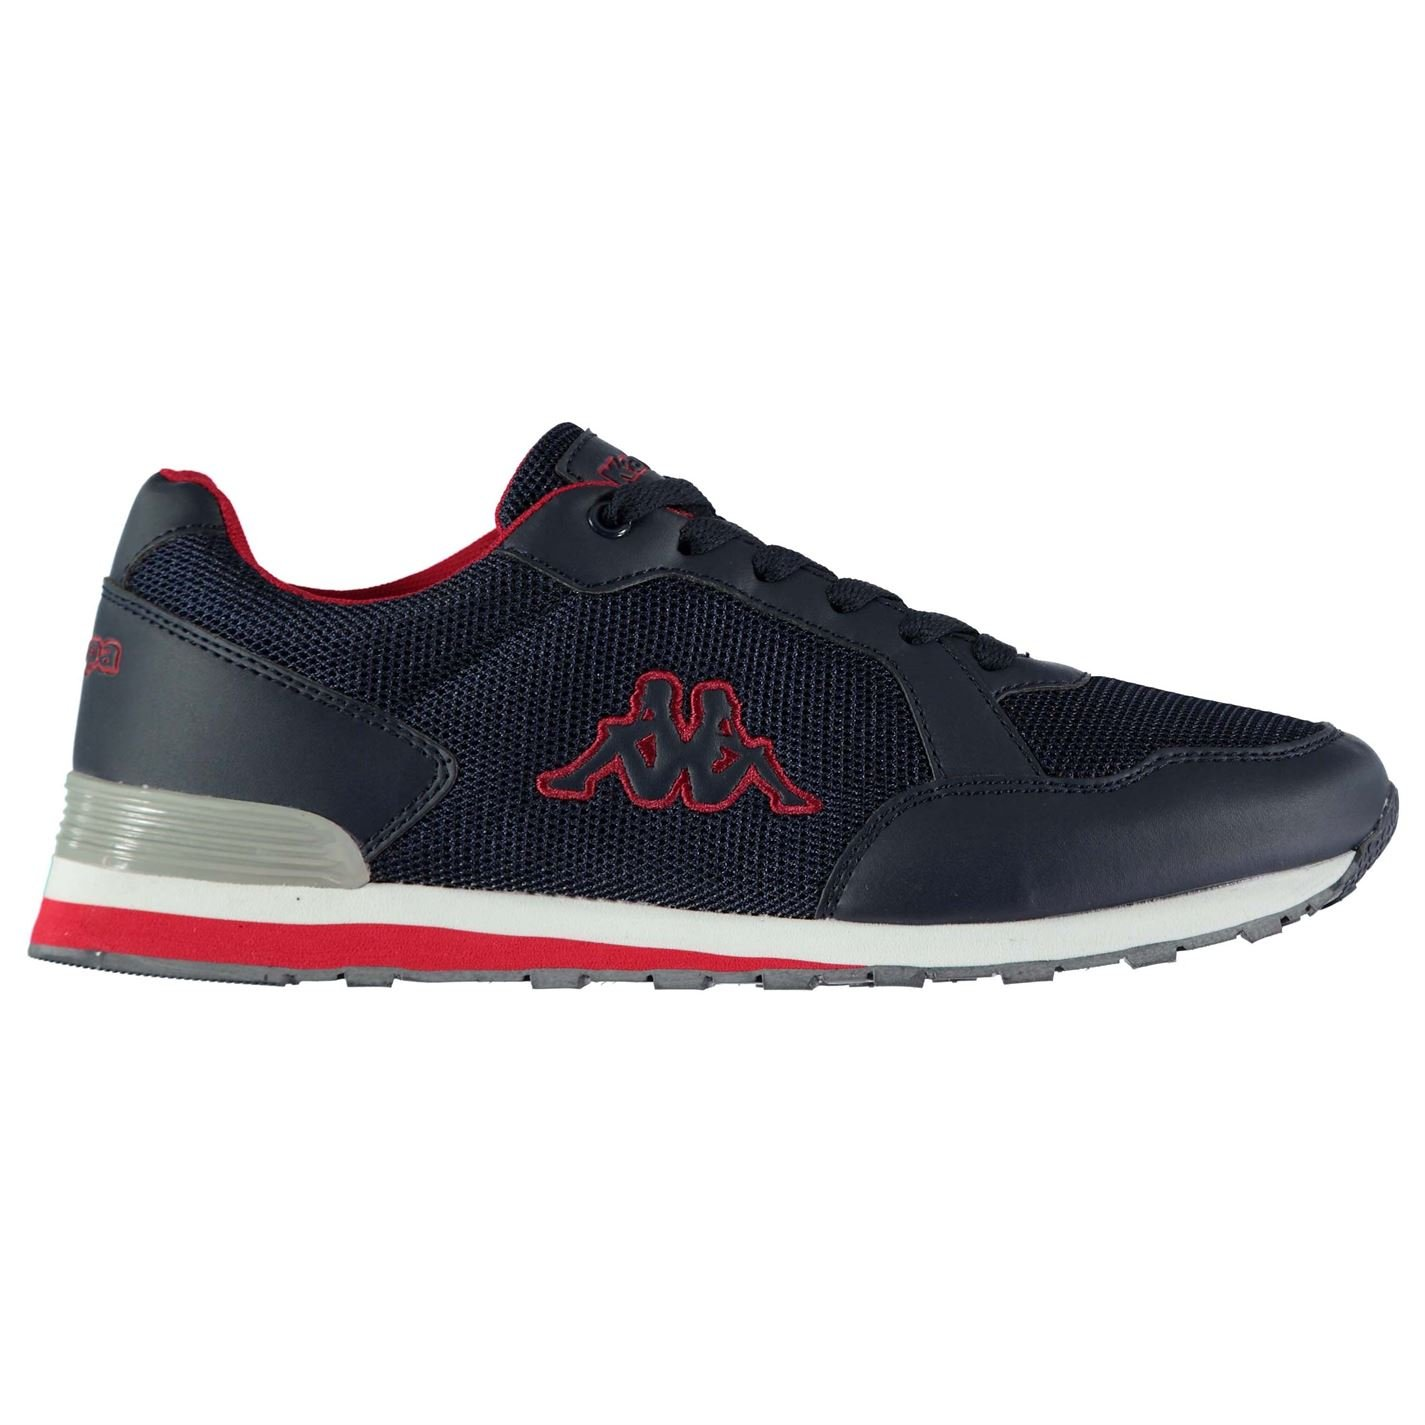 Kappa Trainers. Buy Cheap Kappa Shoes And Sneakers | Trainers